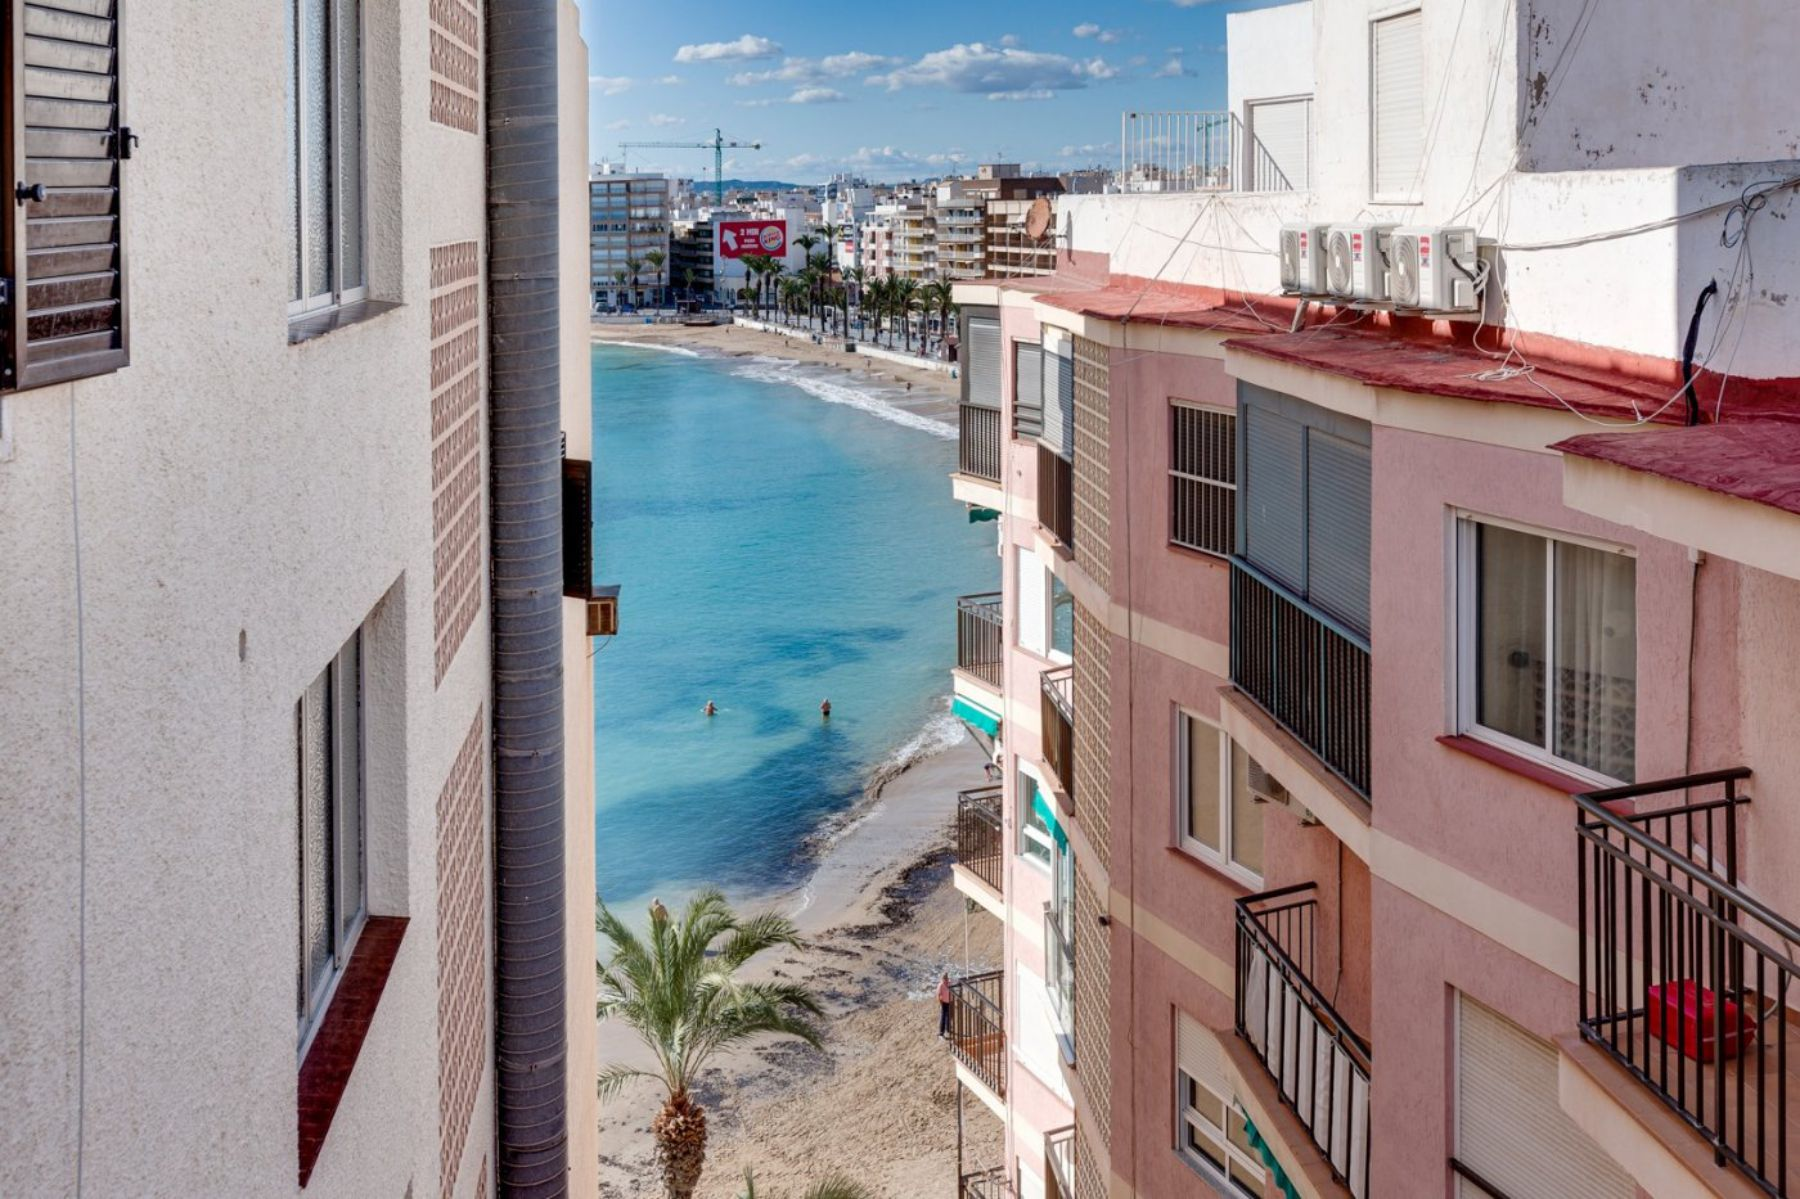 2 Bedrooms Apartment For Sale with Sea View in Torrevieja – El Cura Beach